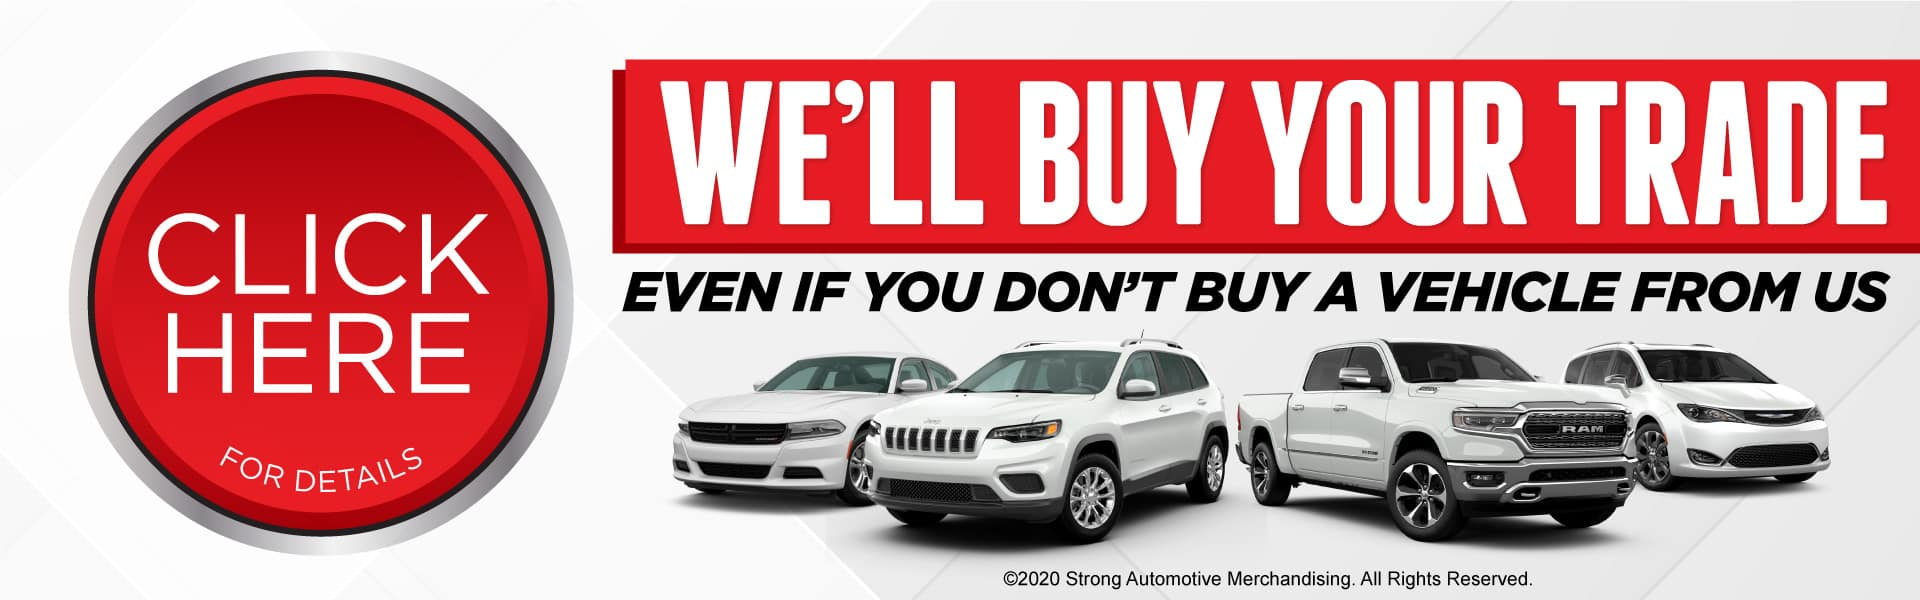 We'll buy your trade even if you don't buy a vehicle from us - Act Now